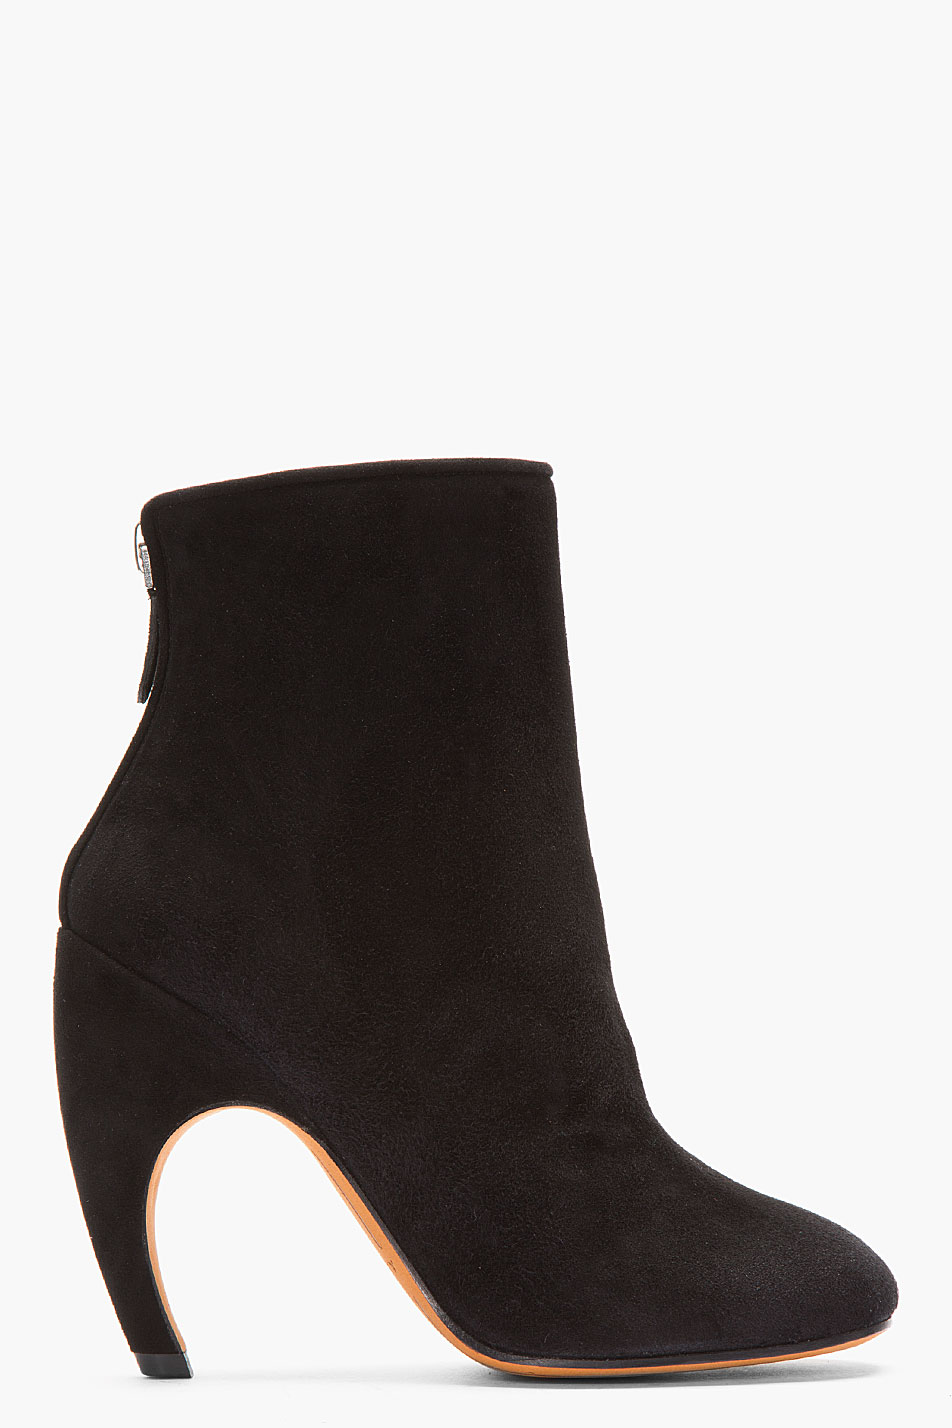 givenchy black suede boots in black lyst